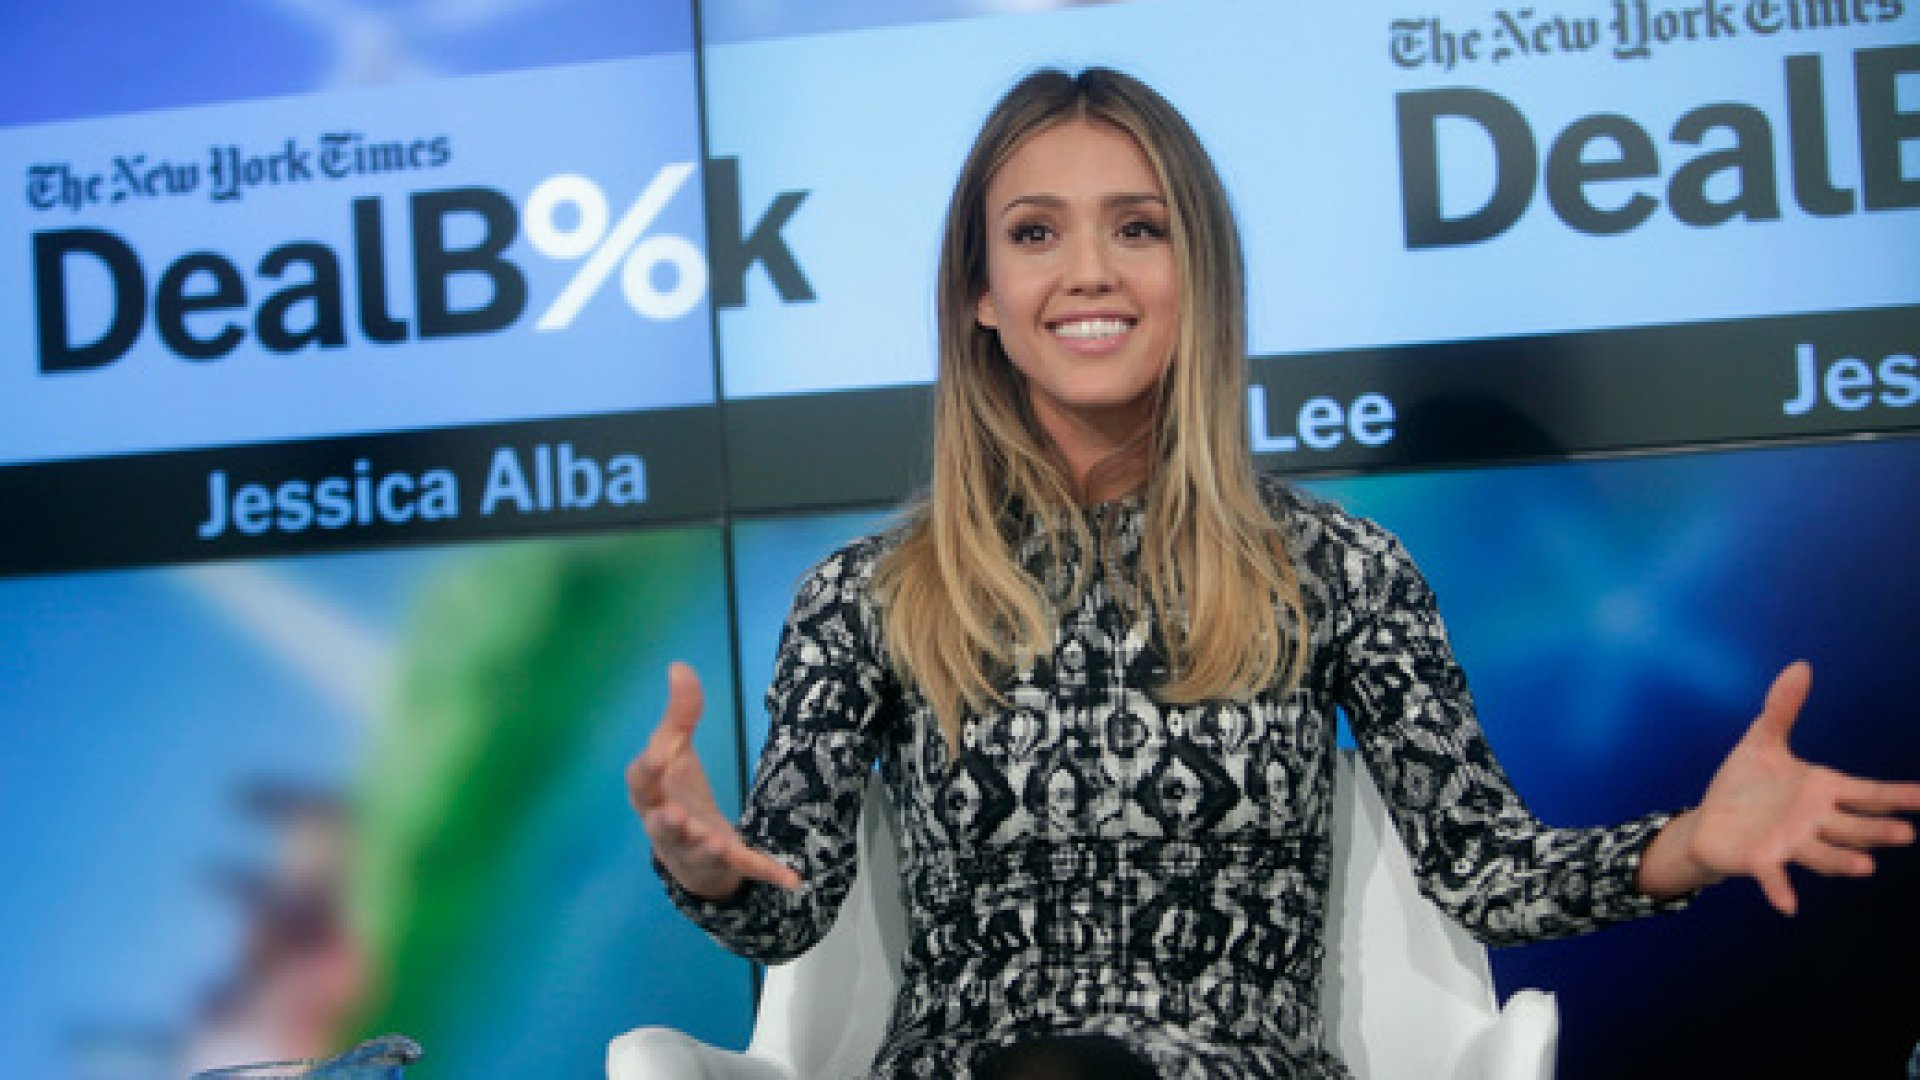 How Jessica Alba Pivoted From Celebrity to Entrepreneur